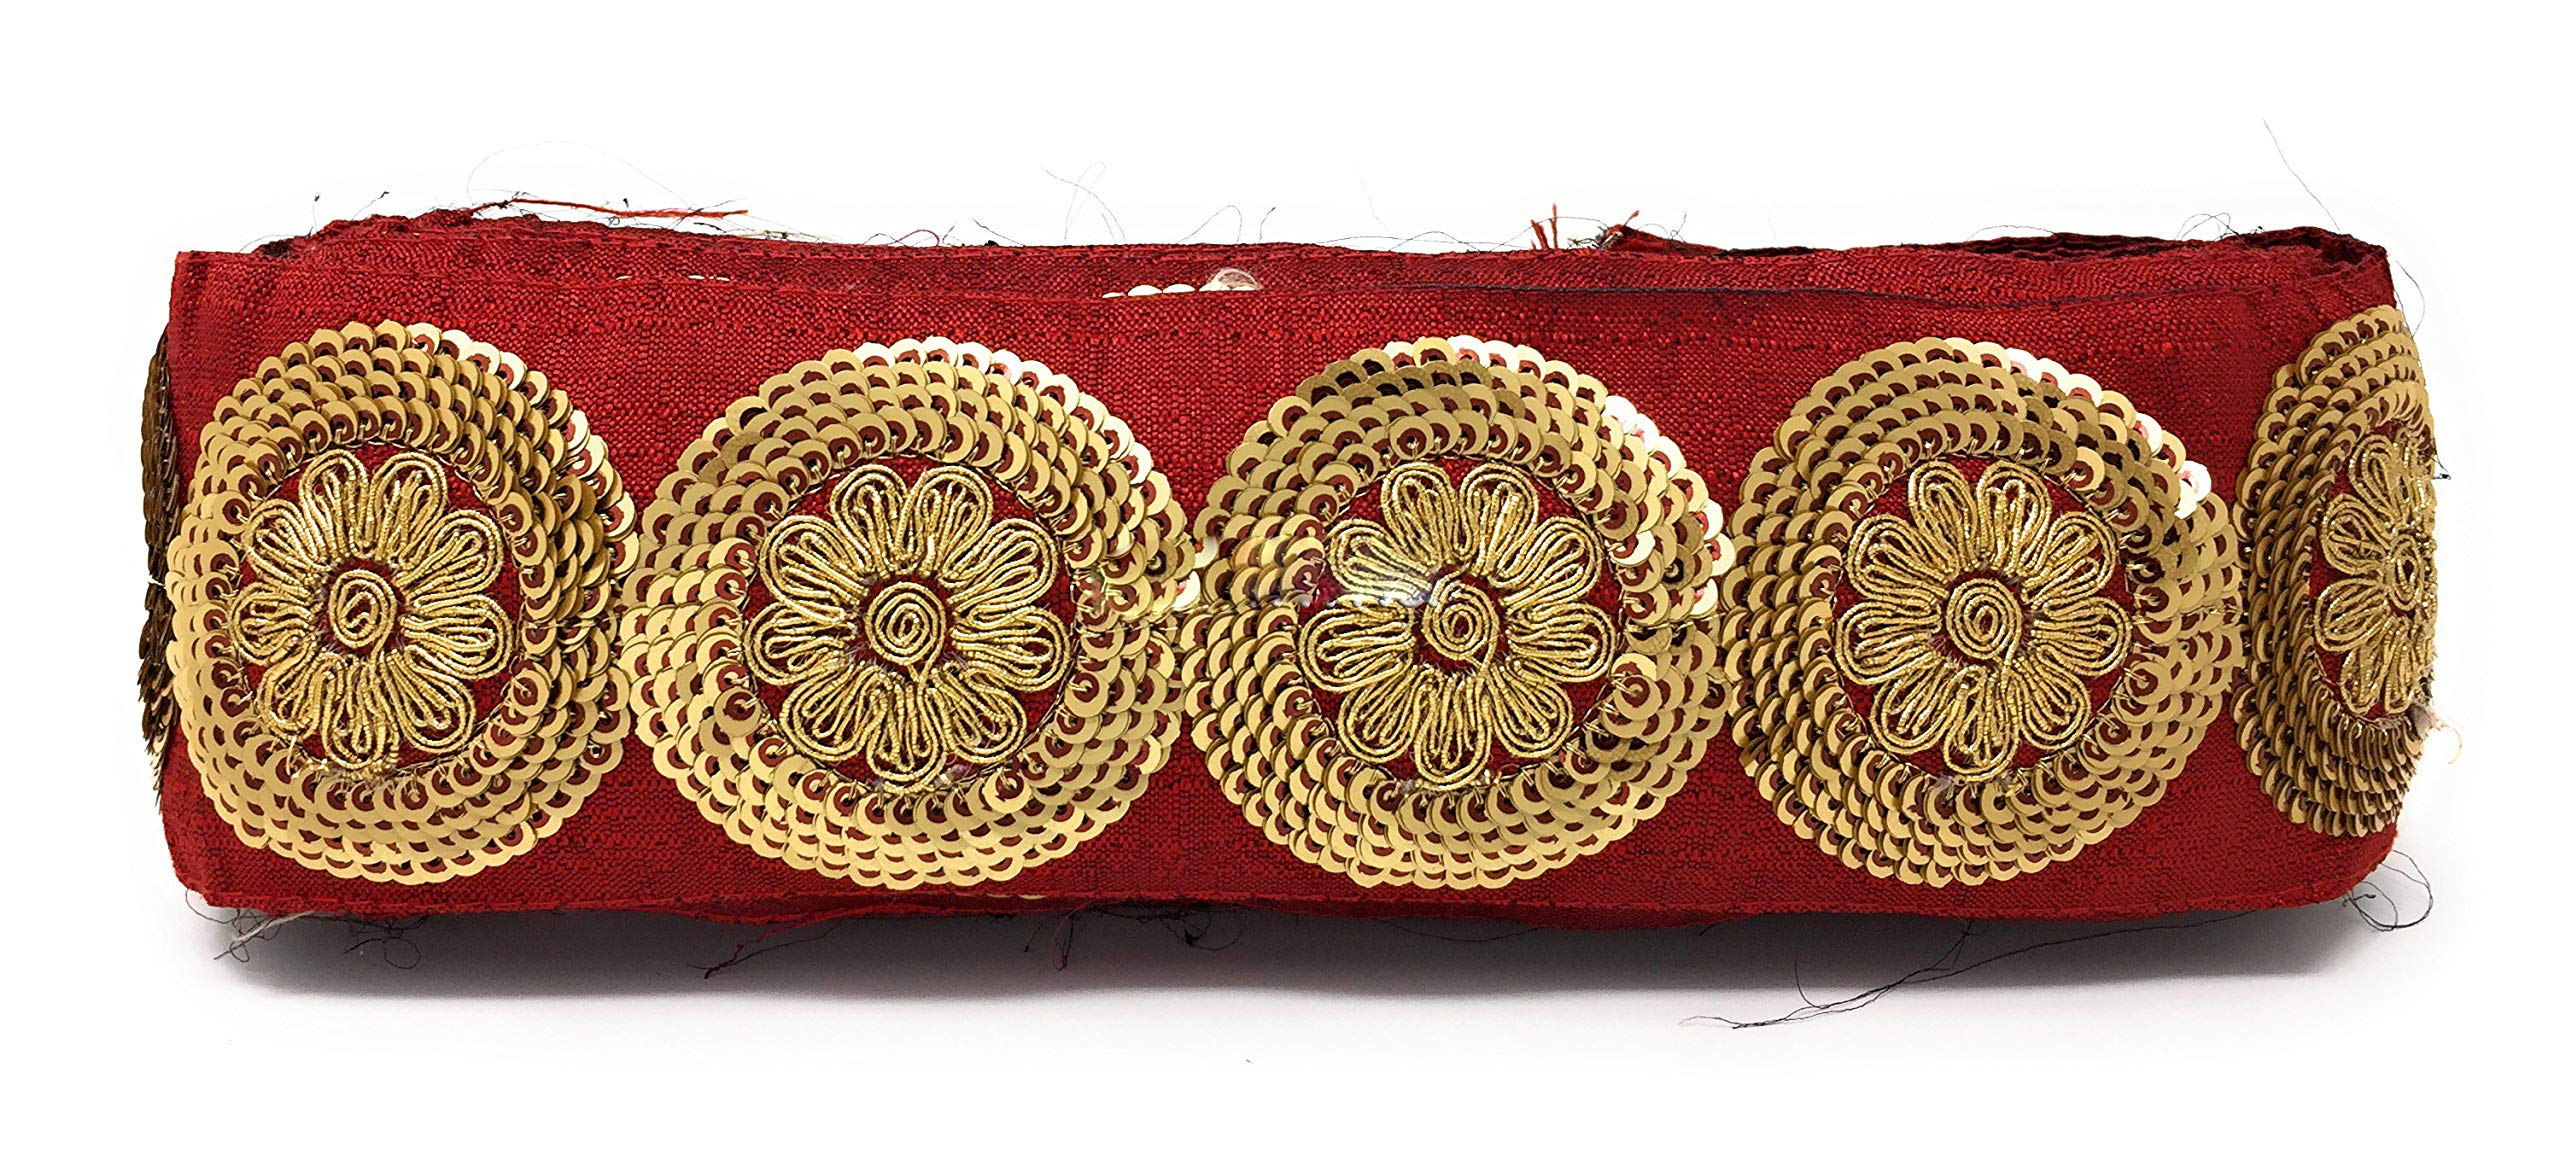 Inhika 9 Yard lace Border Trim for Women Saree Dupatta Maroon Colour Gold, Pearl Gold, Maroon Embroidery, Sequins, Cotton Mix Material Medium Width at 7 cm Wide by Inhika